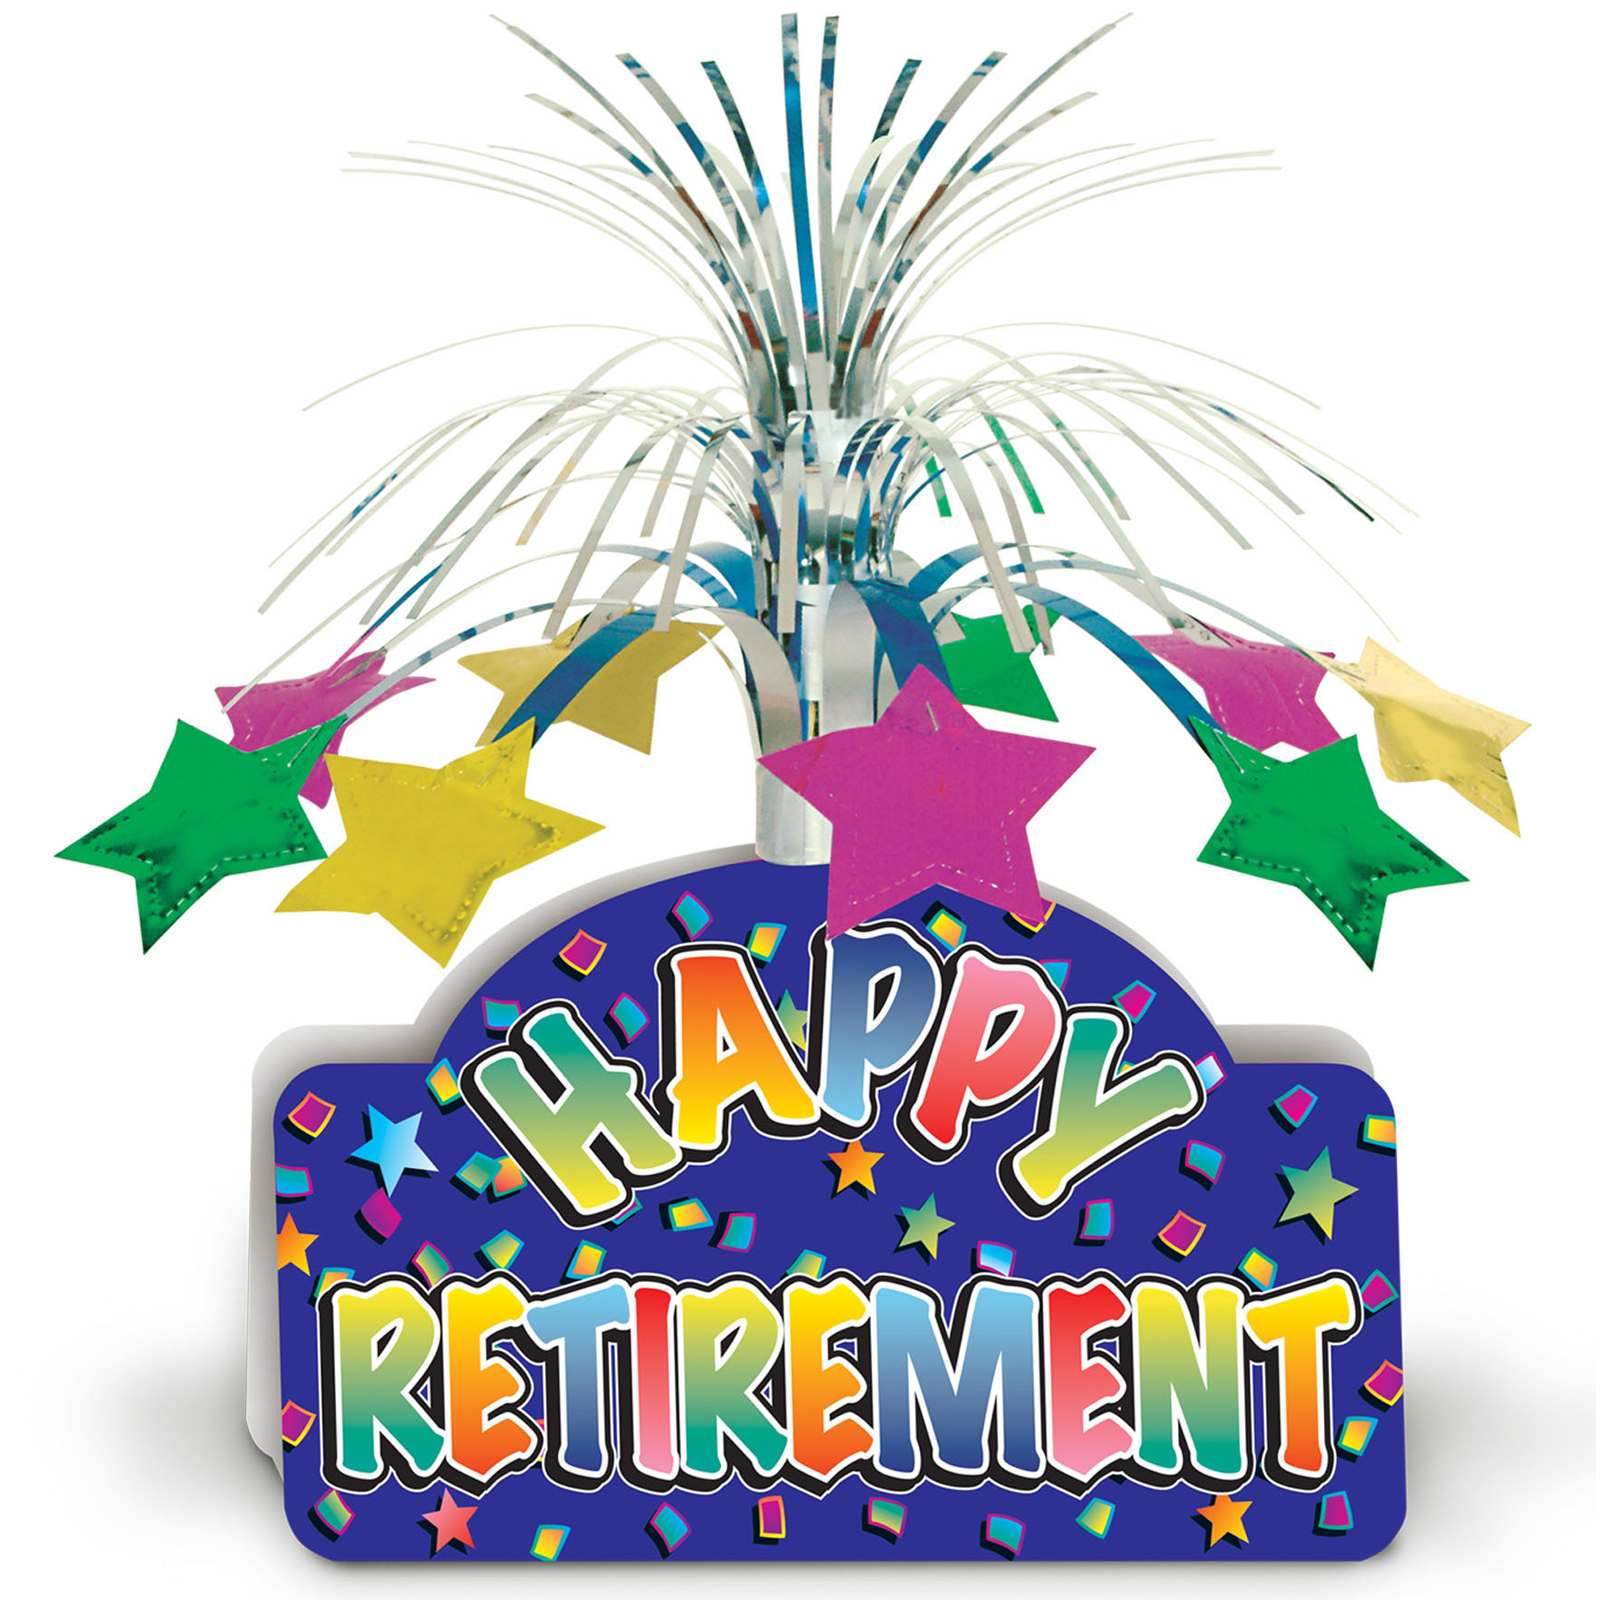 Free Clipart For Retirement Party - ClipArt Best